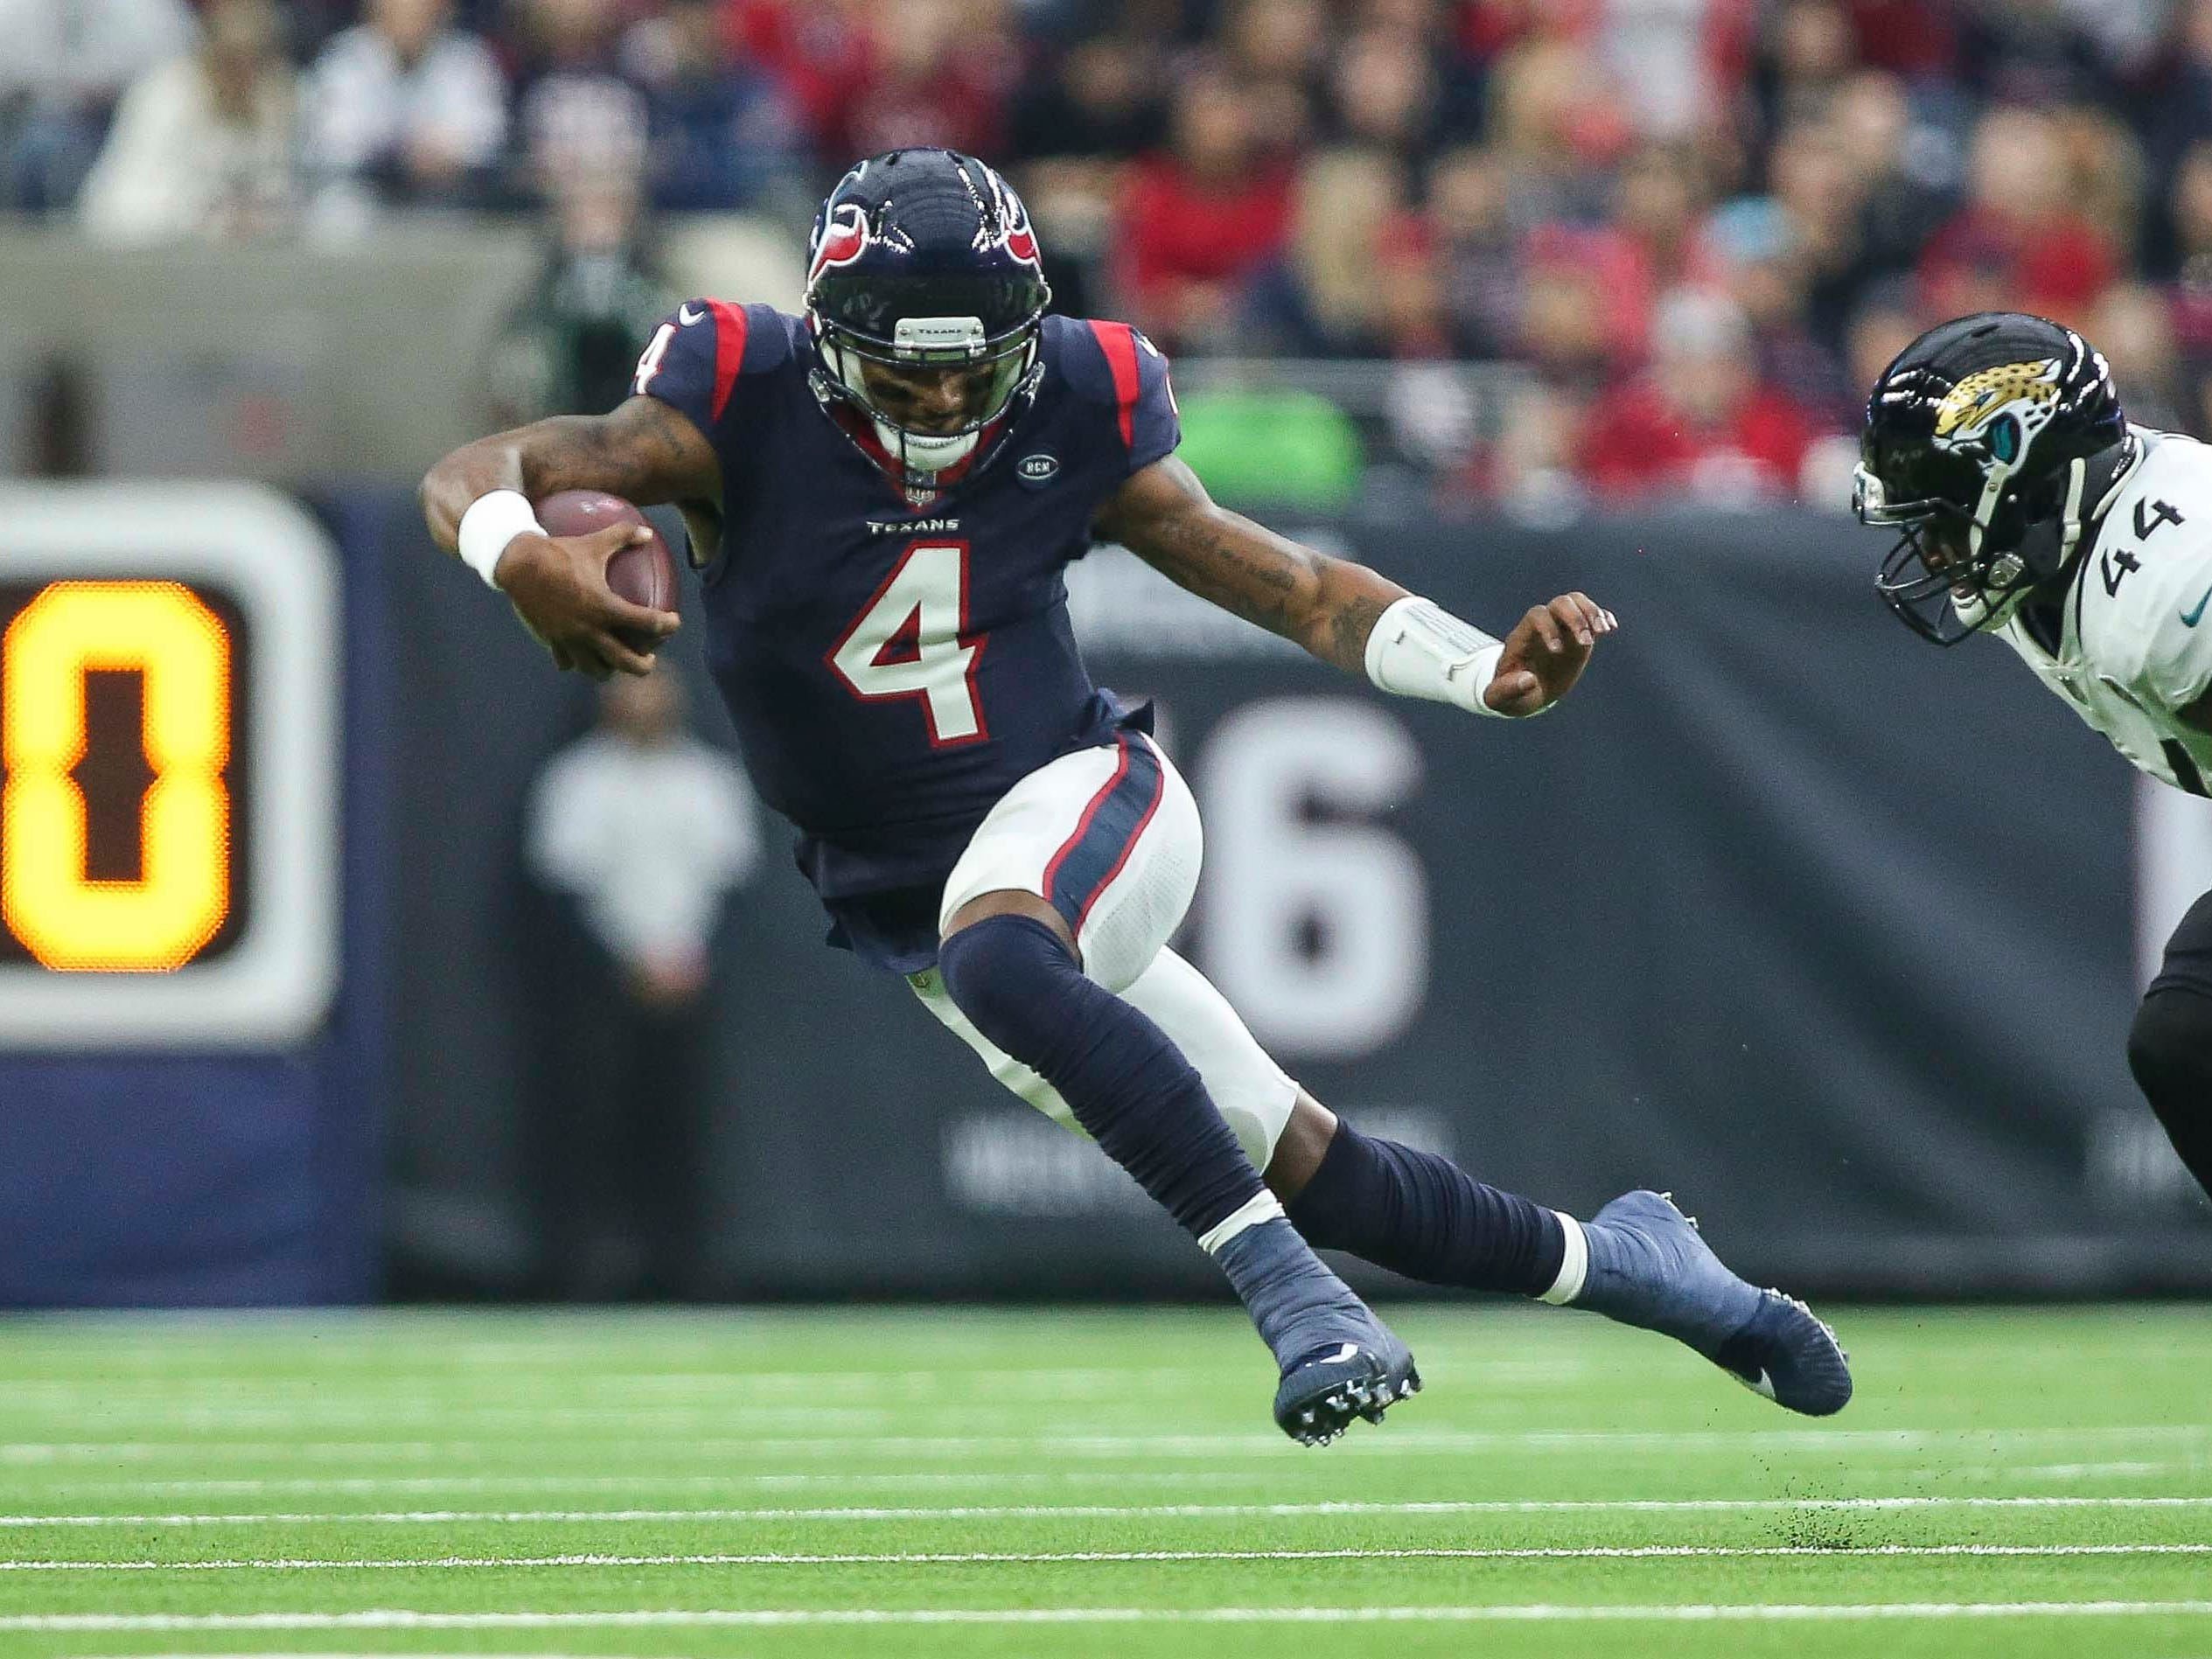 Week 17: Houston Texans quarterback Deshaun Watson (4) runs with the ball during the first quarter against the Jacksonville Jaguars at NRG Stadium.